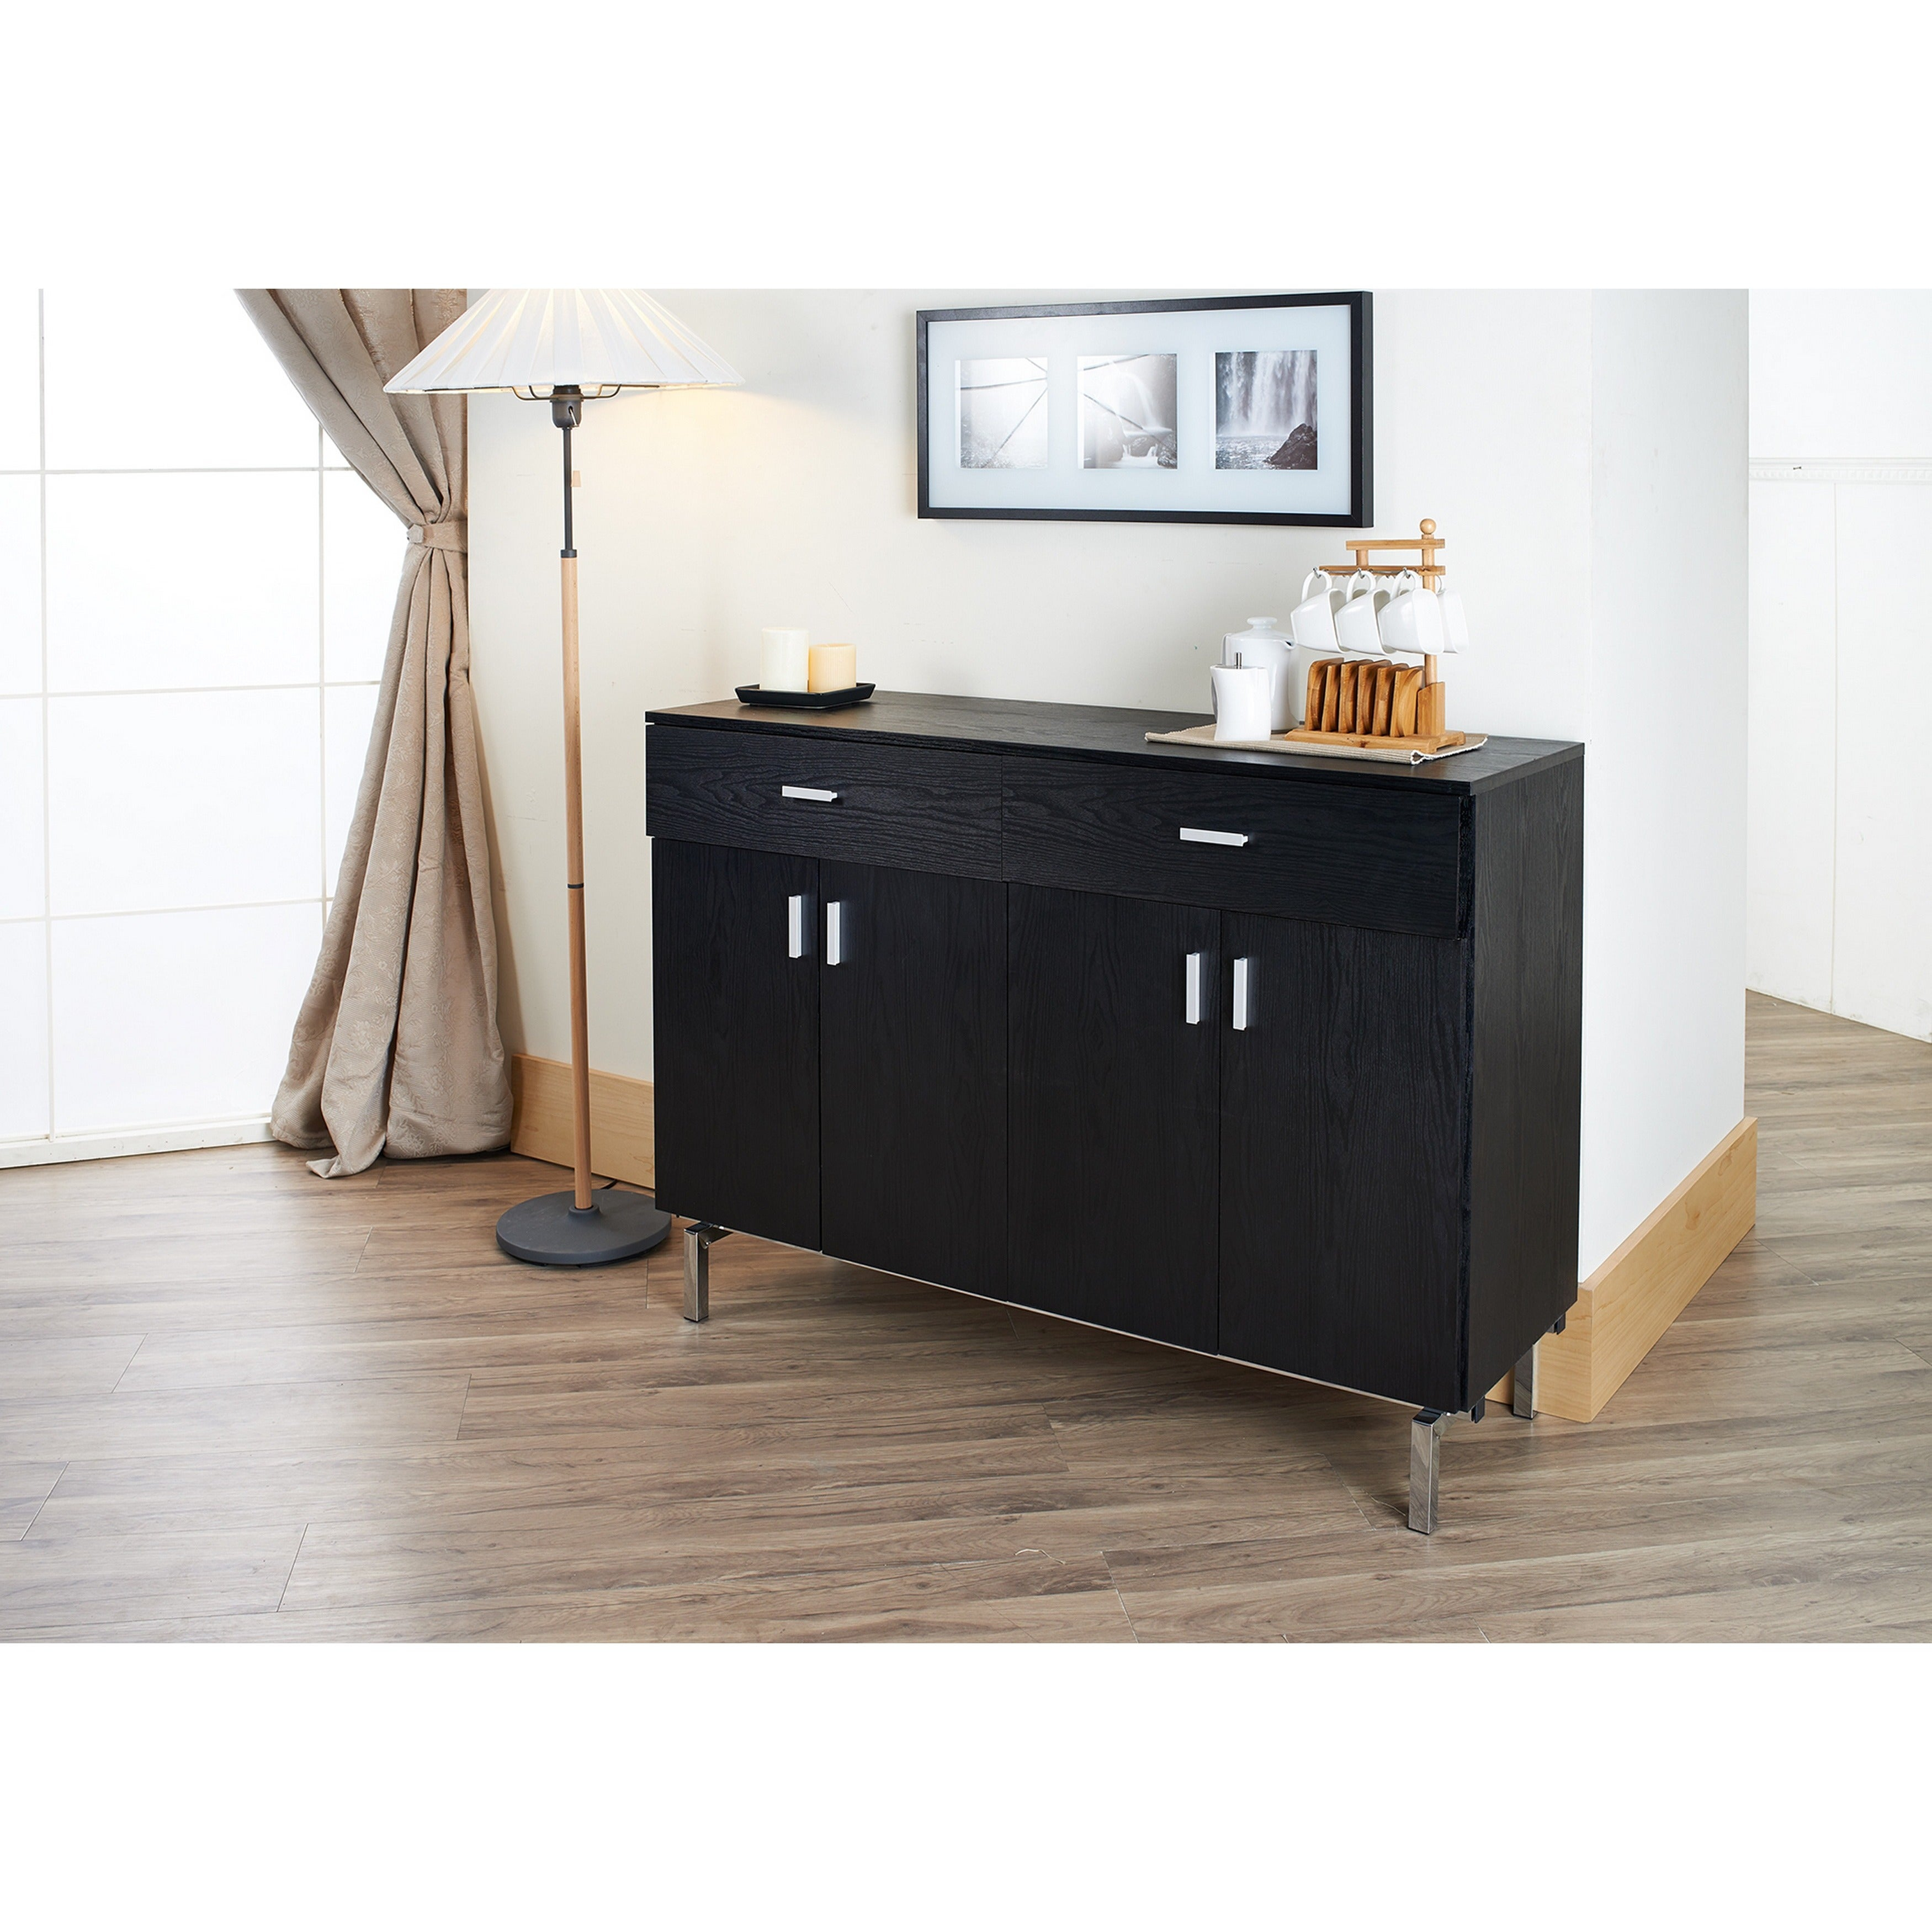 Details About Mason Contemporary Black Buffetfoa With Regard To Carrera Contemporary Black Dining Buffets (Gallery 21 of 30)